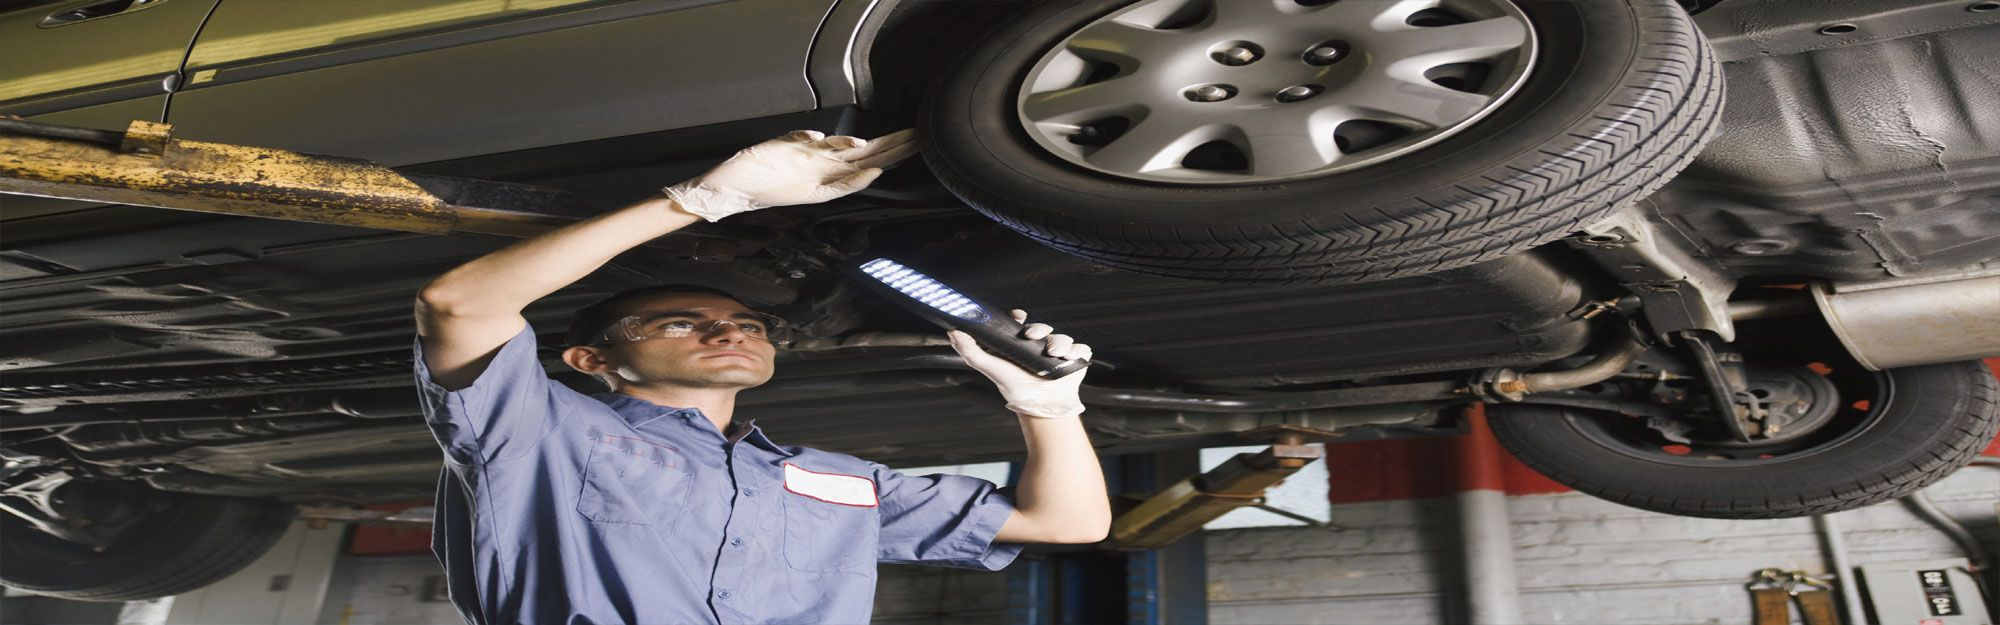 Best Auto mechanic and auto transmission services in